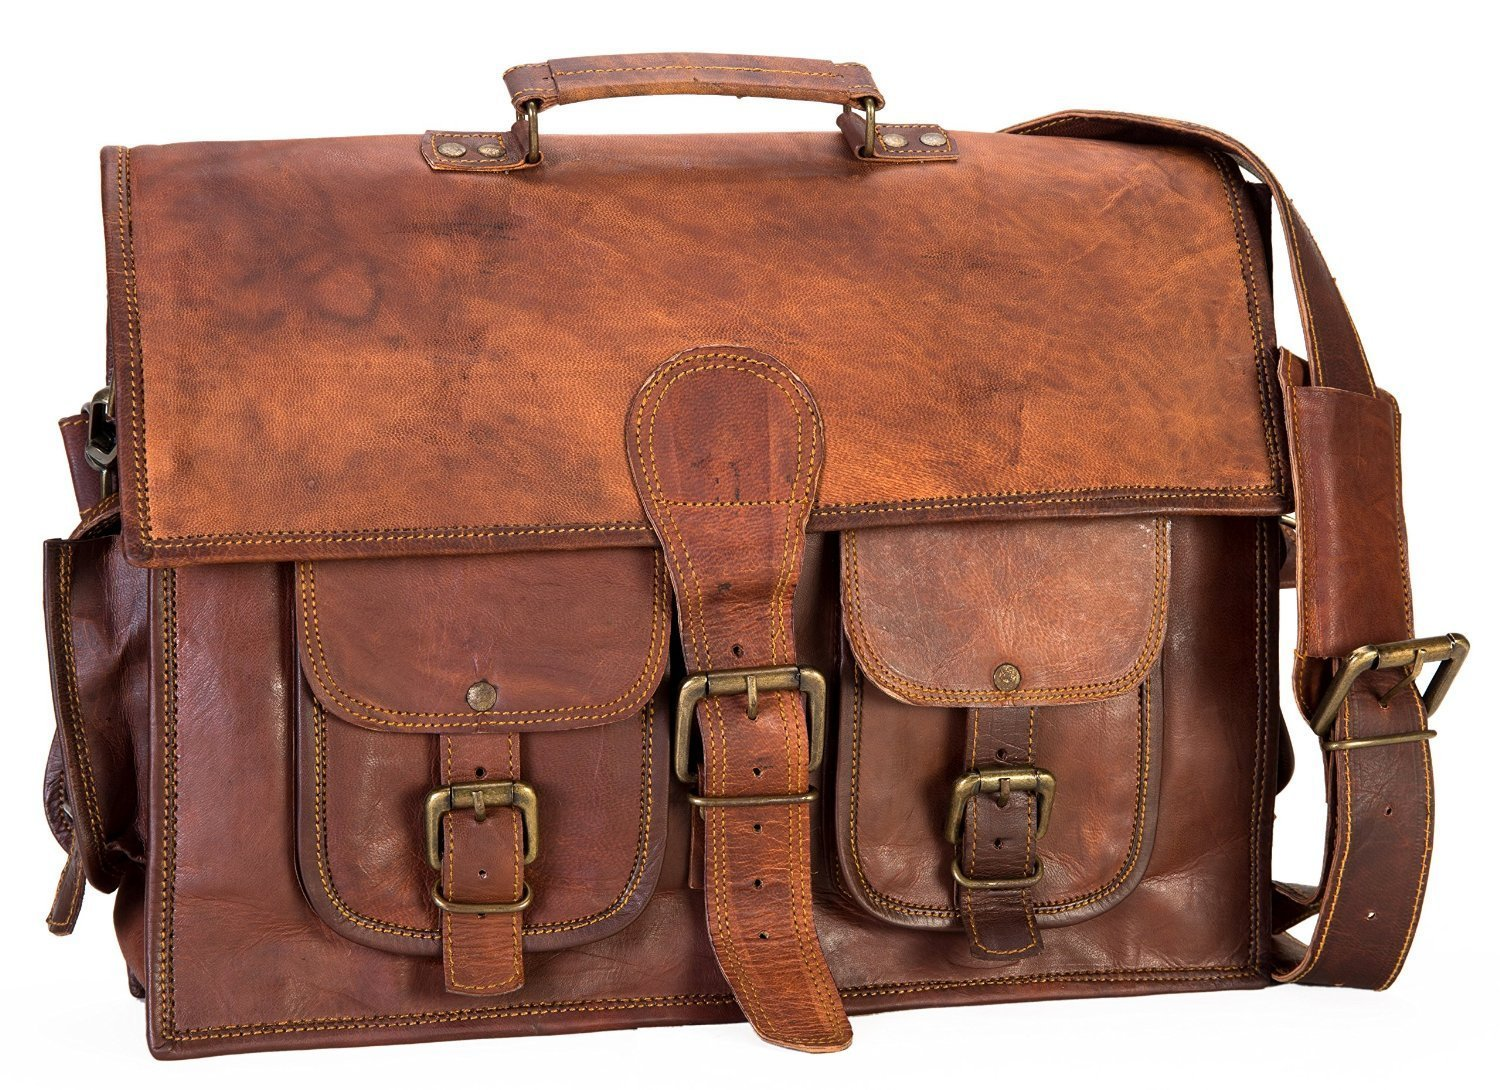 Vintage laptop briefcase the same